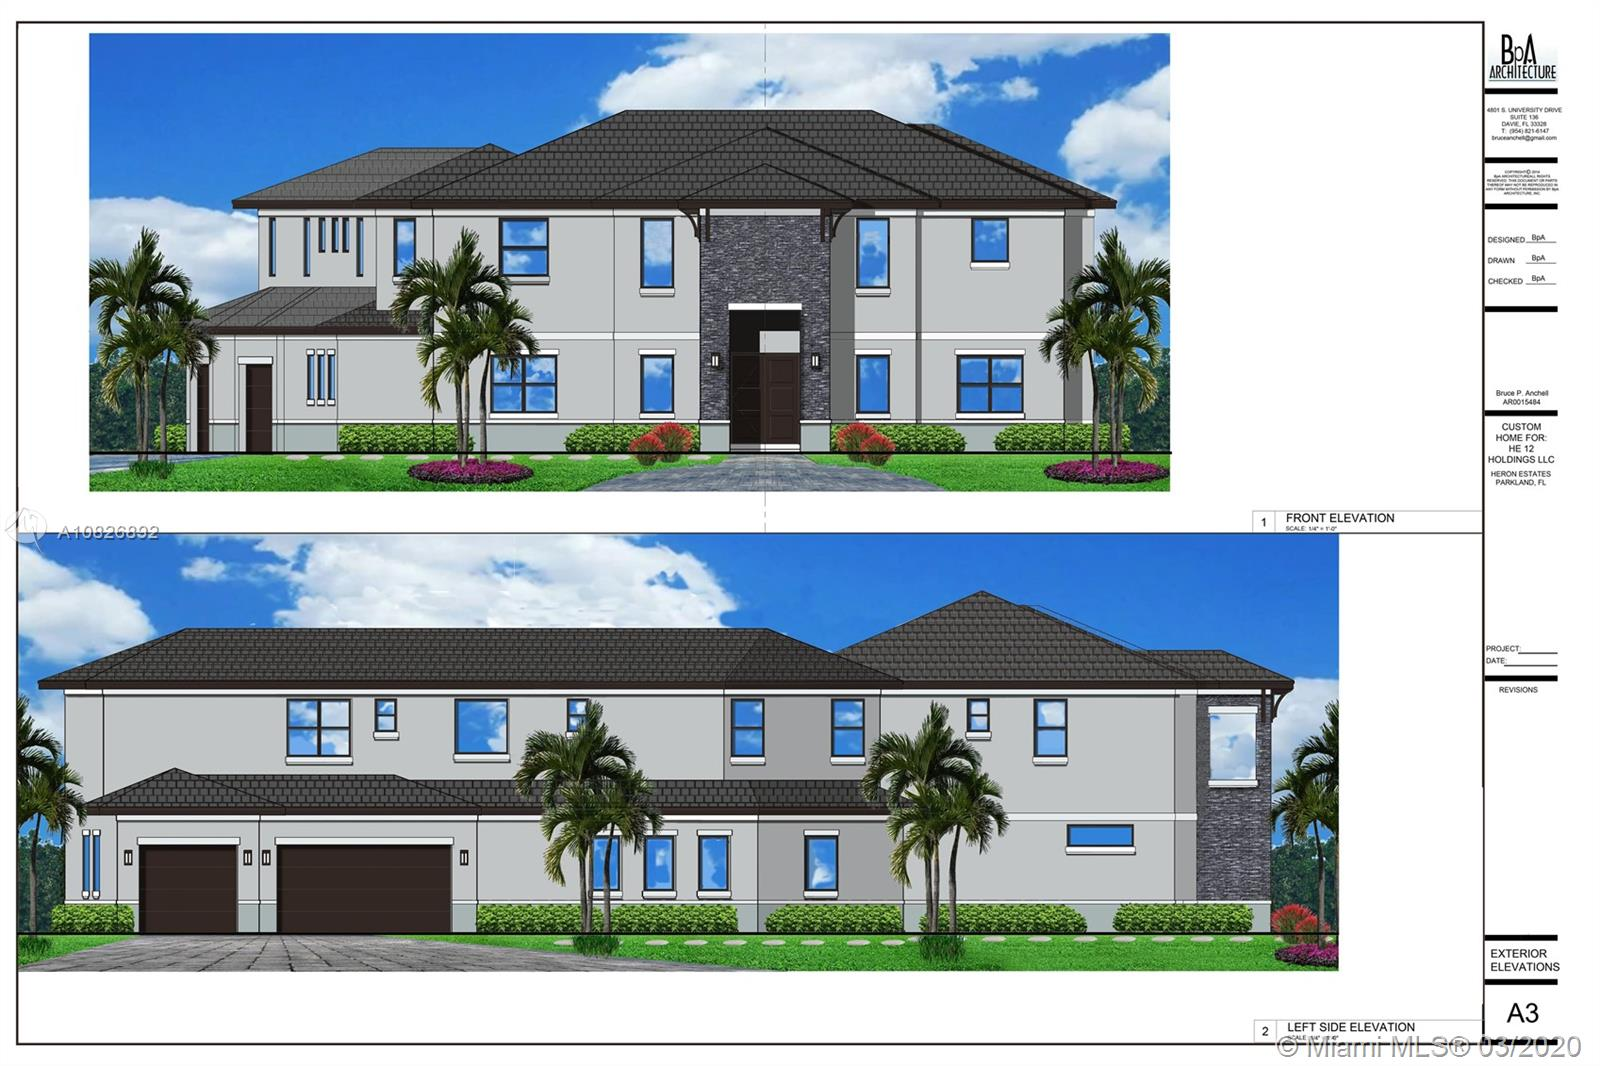 BUILD to SUIT your HOME in Parkland!!! - CUSTOM NEW CONSTRUCTION IN EXCLUSIVE HERON ESTATES @ HERON BAY PARKLAND. OVERSIZED CORNER LOT 18,134 SQFT.  - 5,089 SQFT UNDER A/C - TOTAL - 6,572 SQFT - 6 BEDROOM 7.5 BATHS - HOME OFFICE - ENTERTAINMENT ROOM - 3 CAR GARAGE - IMPACT RESISTANT WINDOWS & DOORS - POOL & OUTDOOR SUMMER KITCHEN - CONTEMPORARY DESIGN - HIGH END FINISHES ACCORDING TO BUYER'S TASTE - LUSH LANDSCAPING - FULL SET OF PLANS AVAILABLE FOR REVIEW - GREAT OPPORTUNITY TO OWN BRAND NEW CONSTRUCTION IN HIGHLY SOUGHT AFTER PARKLAND - GREAT SCHOOLS.